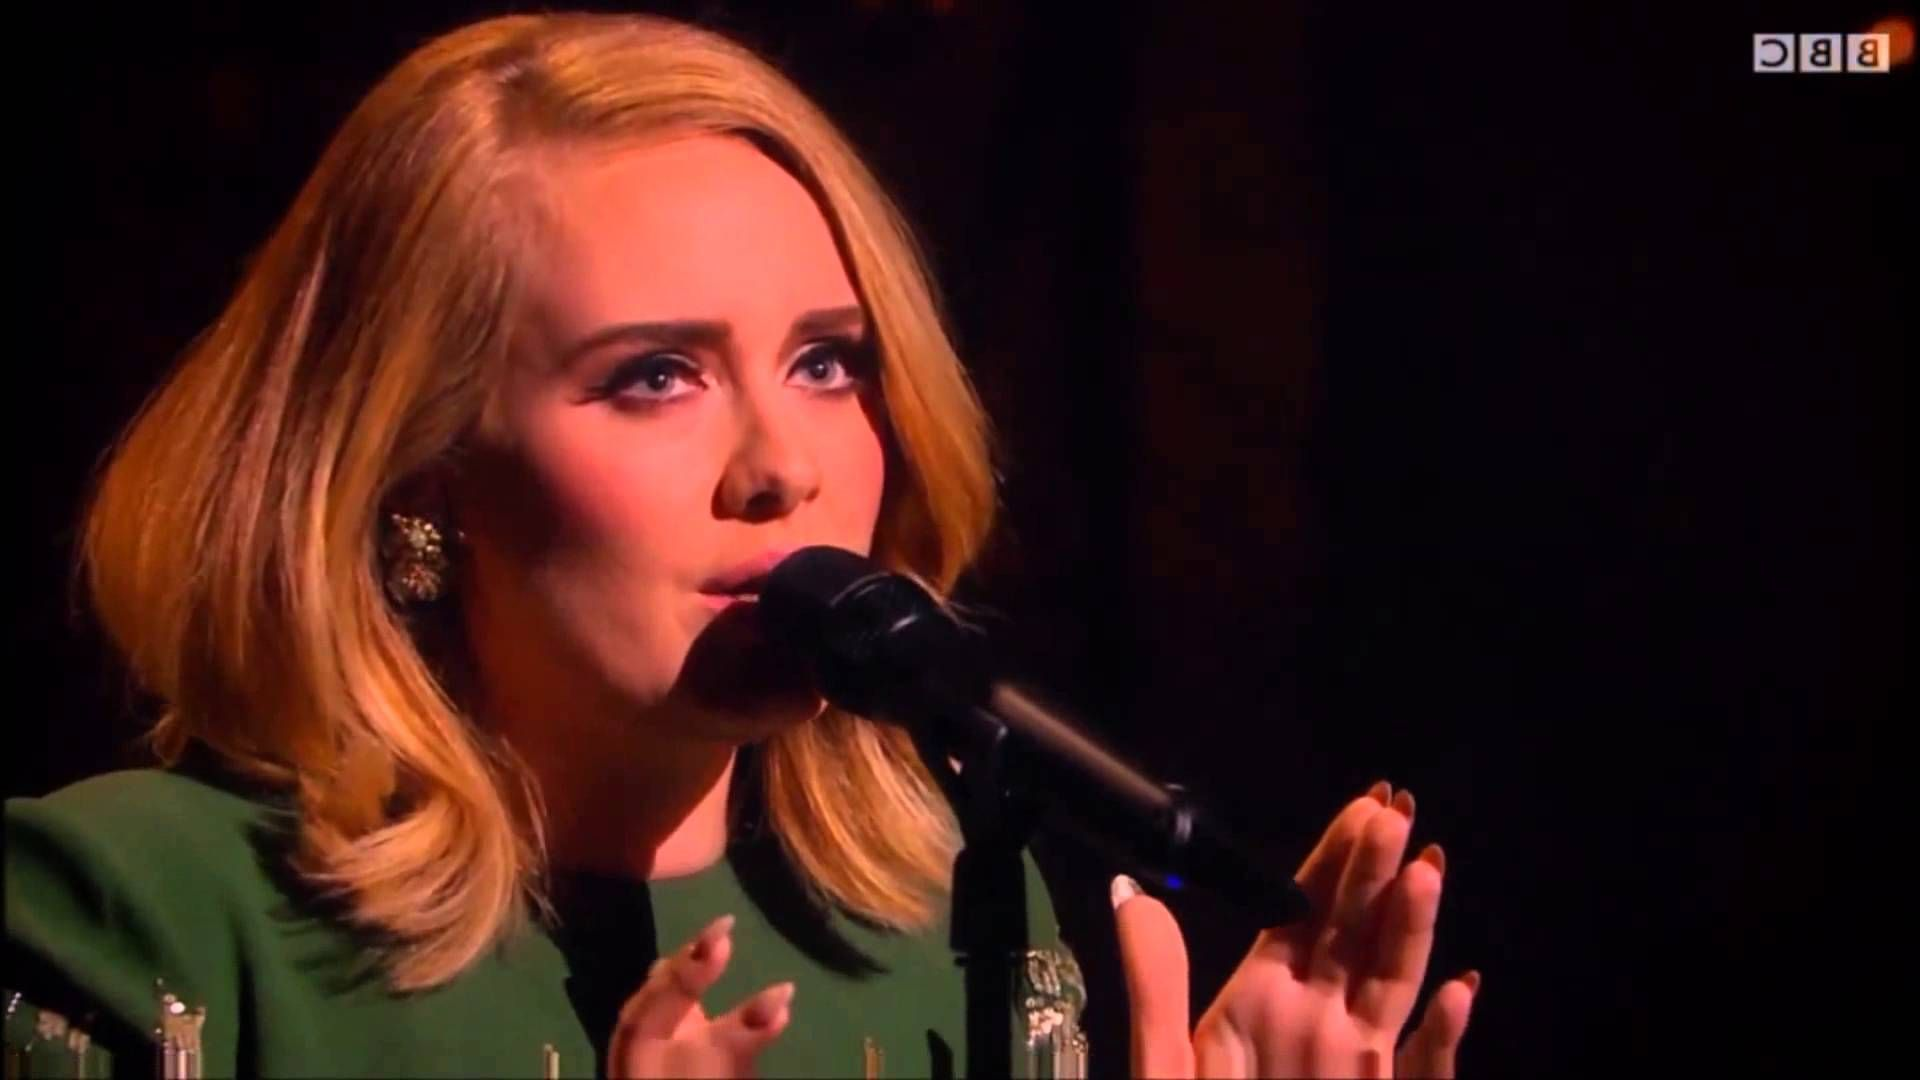 Images of Adele Songs 2019 - #rock-cafe